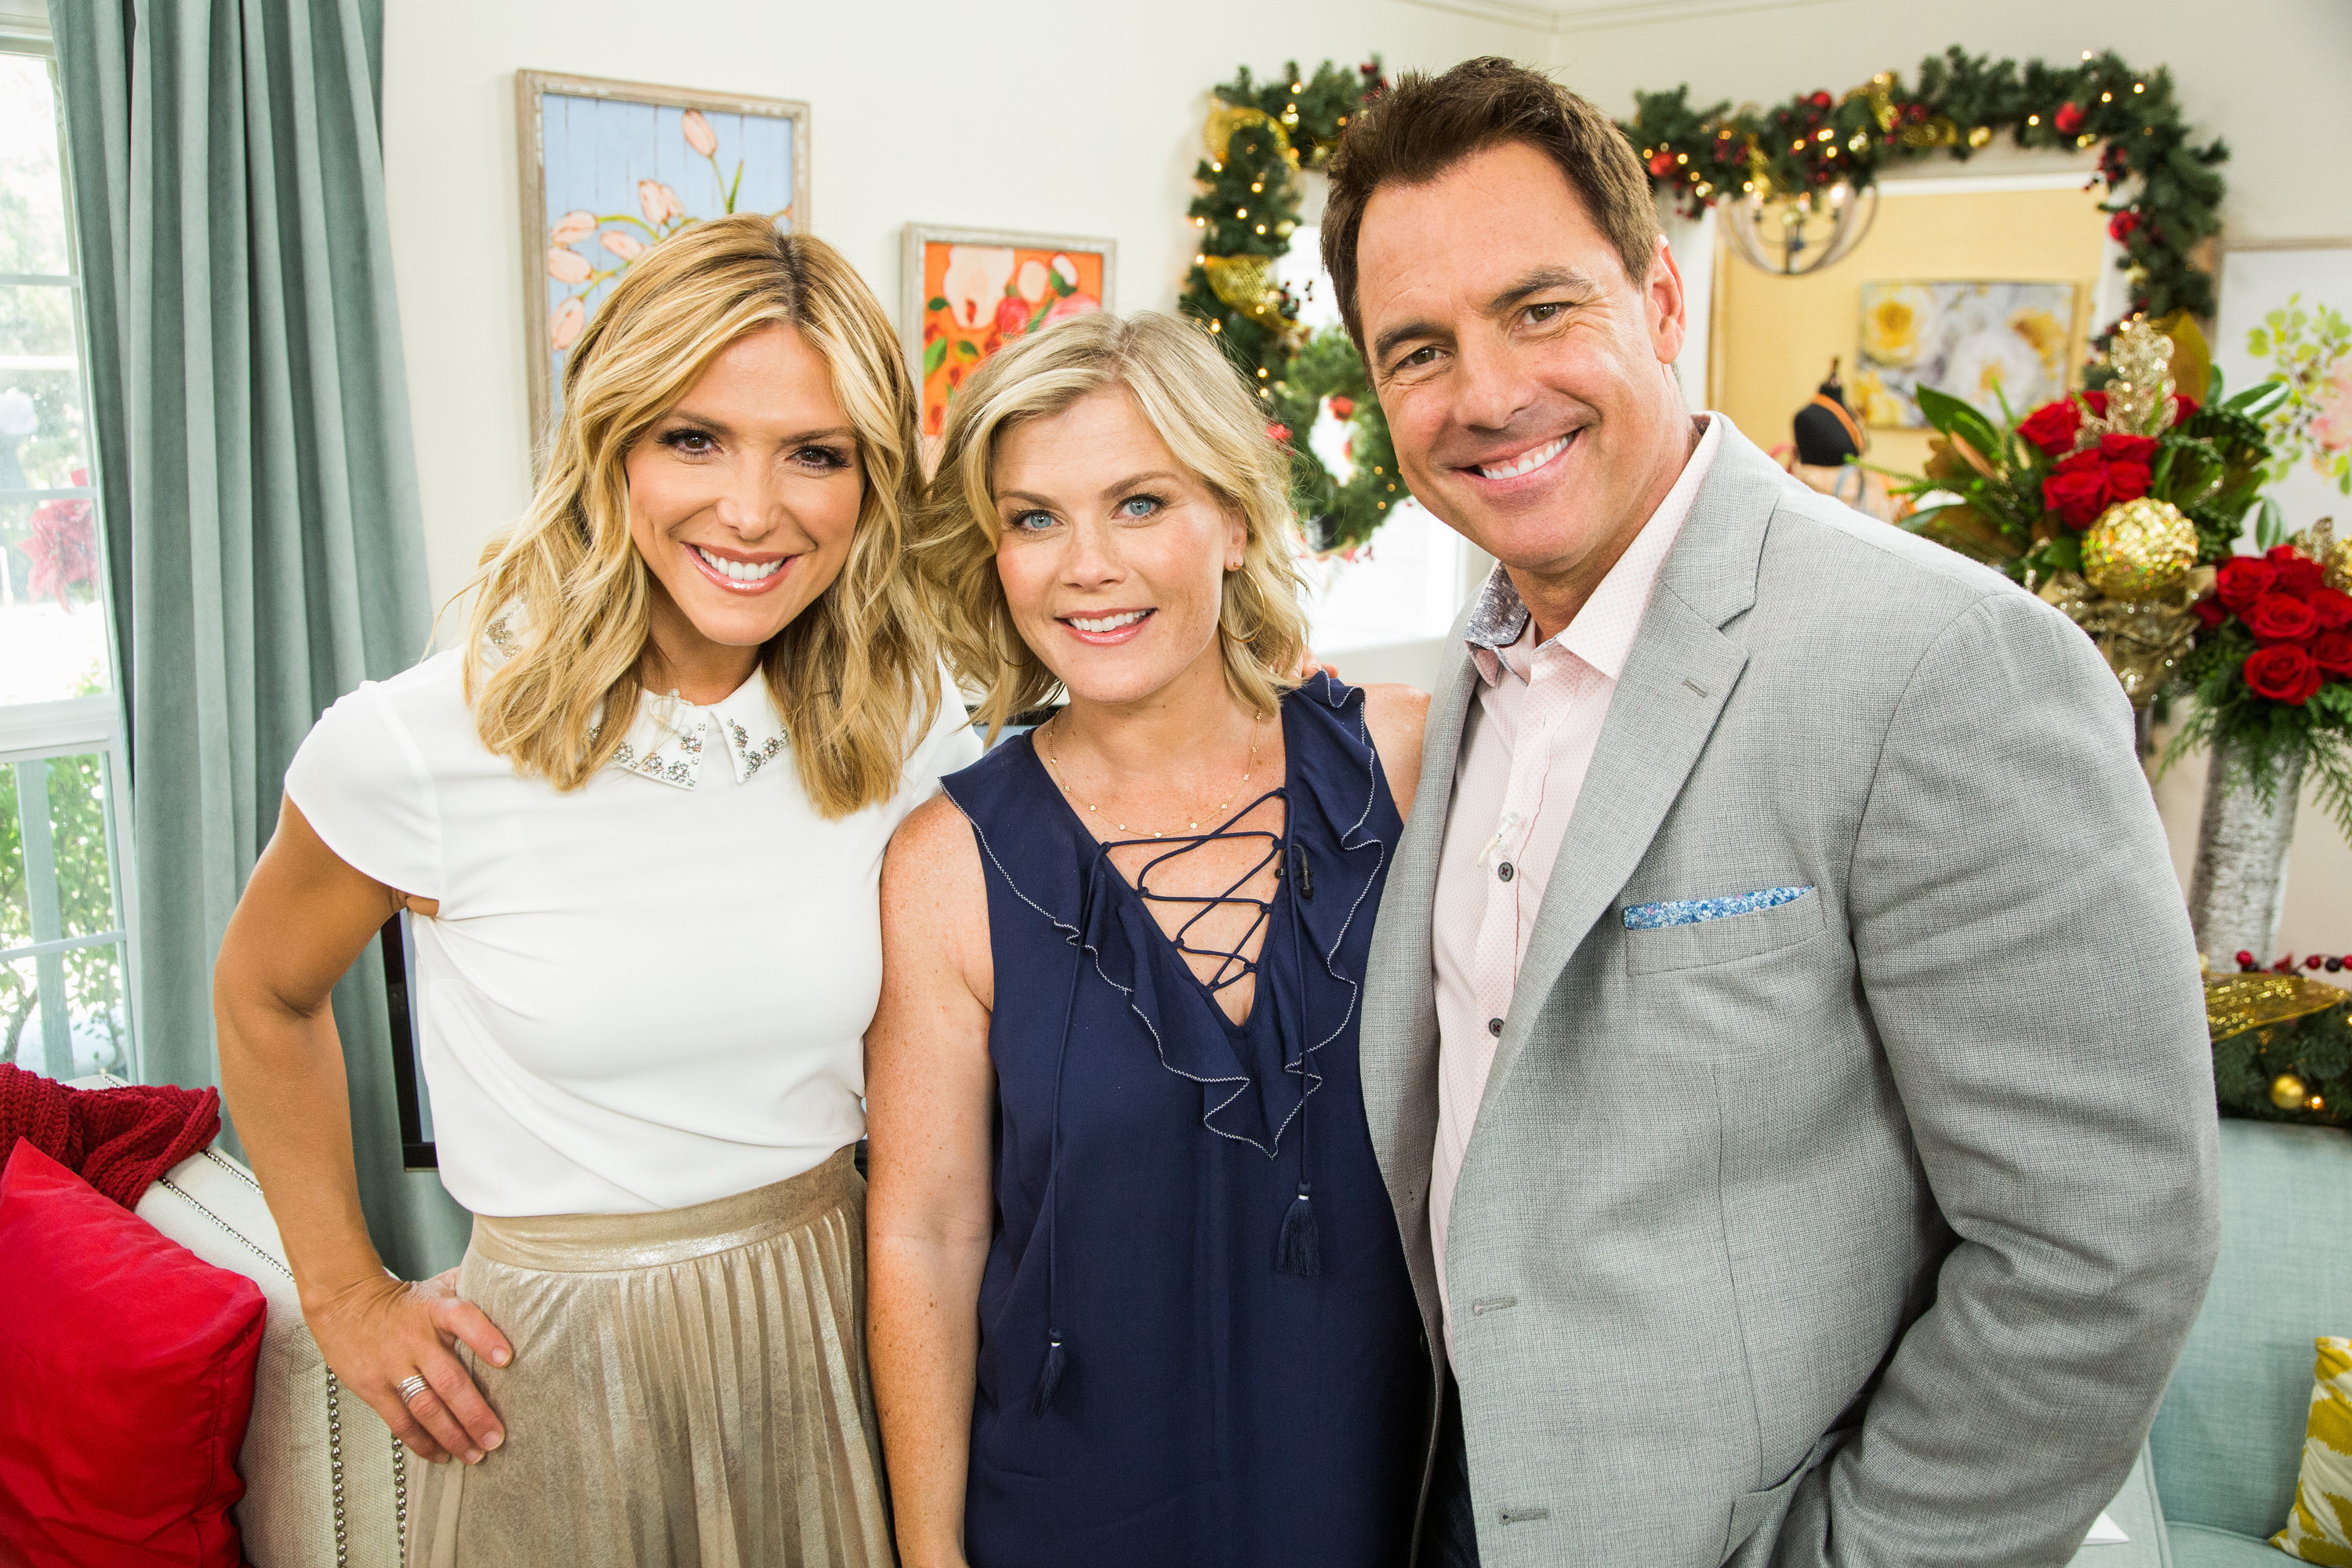 Alison Sweeney Family Pictures alison sweeney talks holidays - home & family - video